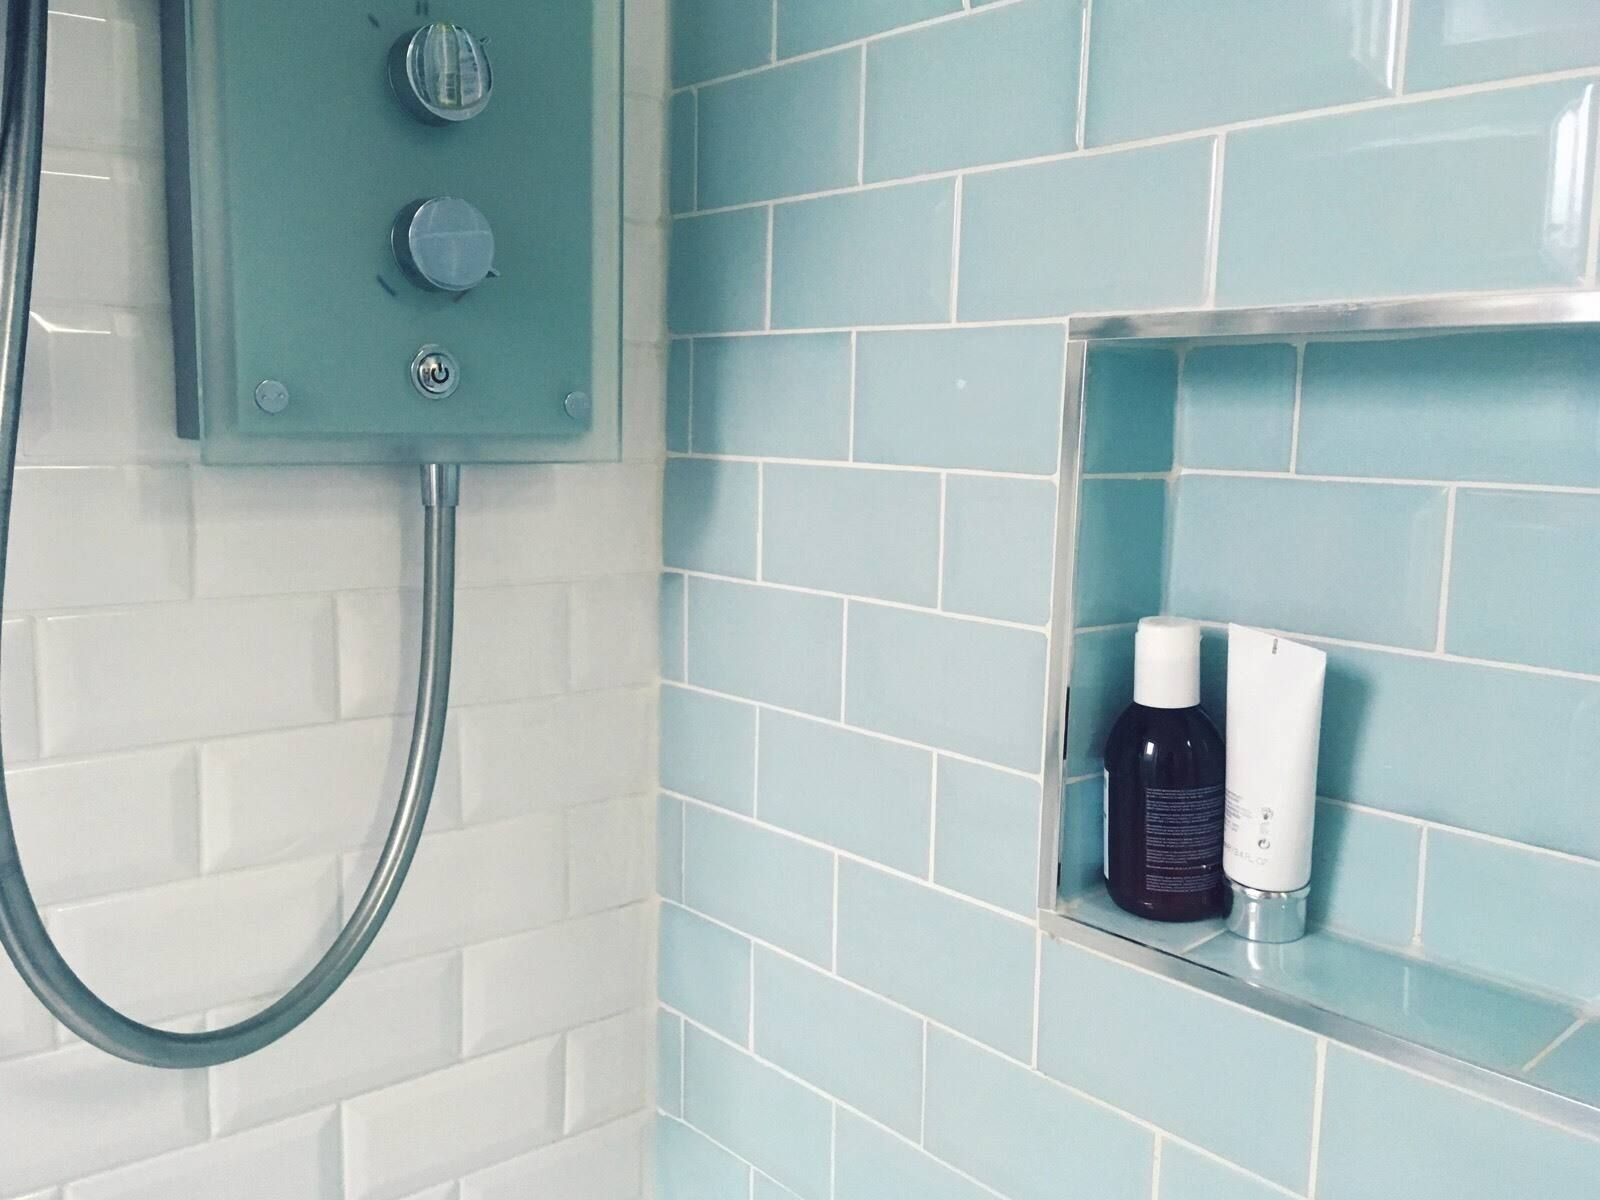 bathroom with blue and white tiles on the walls